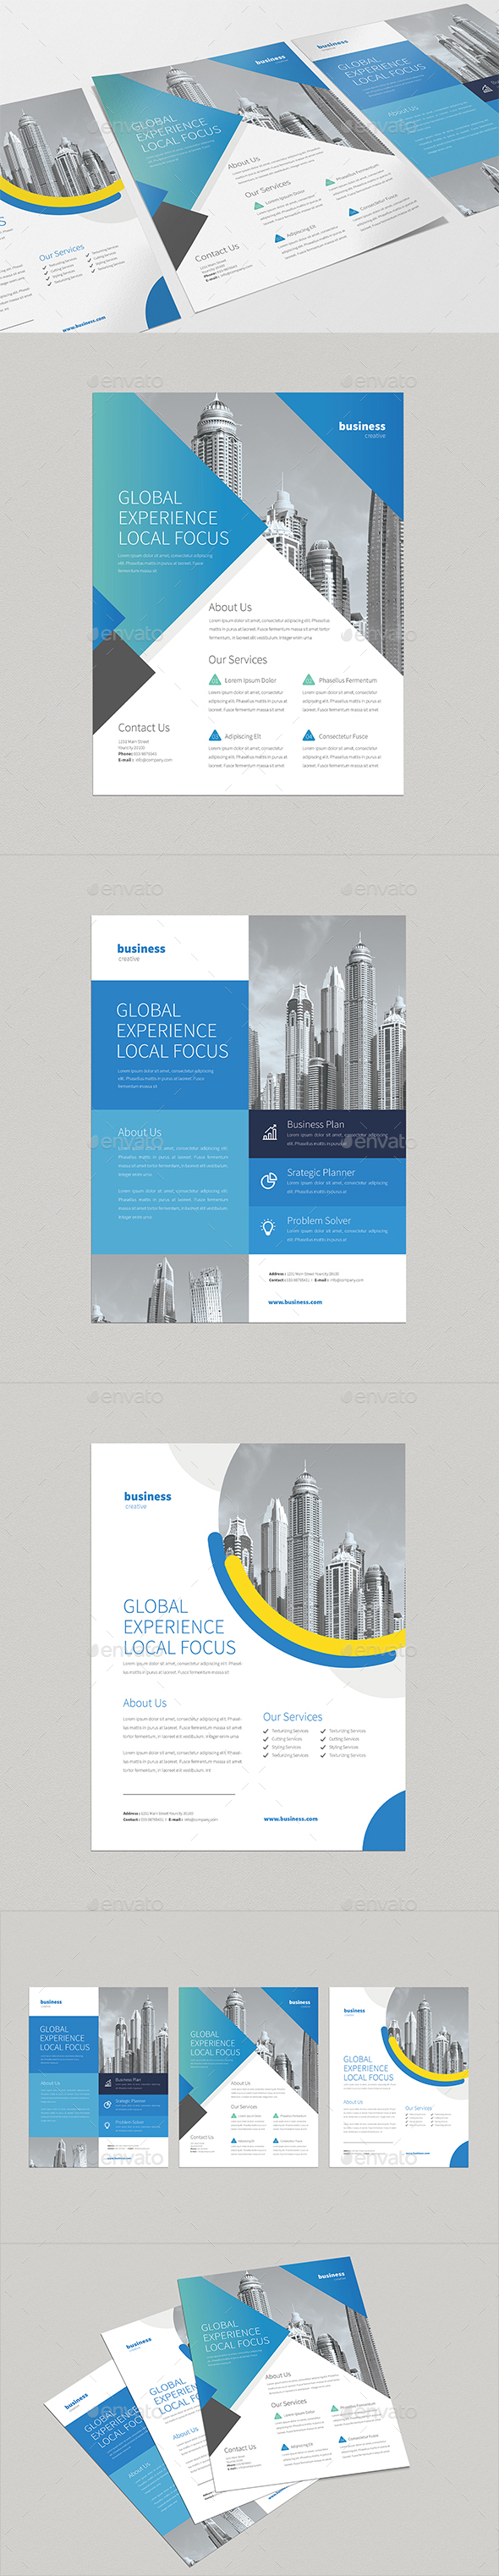 3 Professional Business Flyers - Corporate Flyers